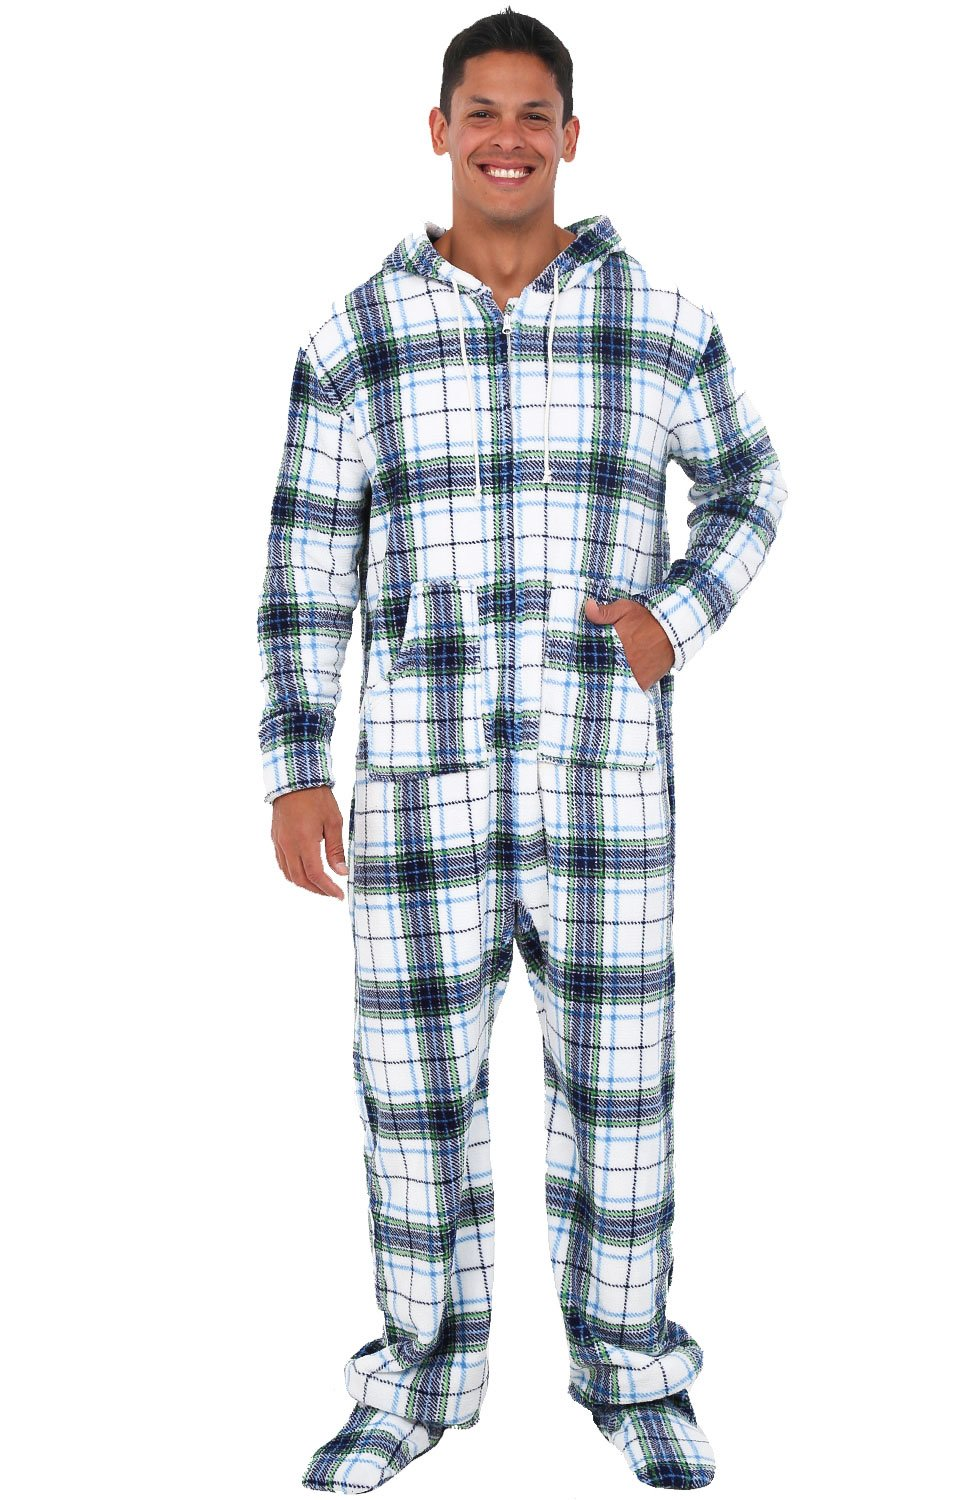 Alexander Del Rossa Mens Fleece Onesie, Hooded Footed Jumpsuit Pajamas, Medium Blue on White Plaid (A0320P06MD)